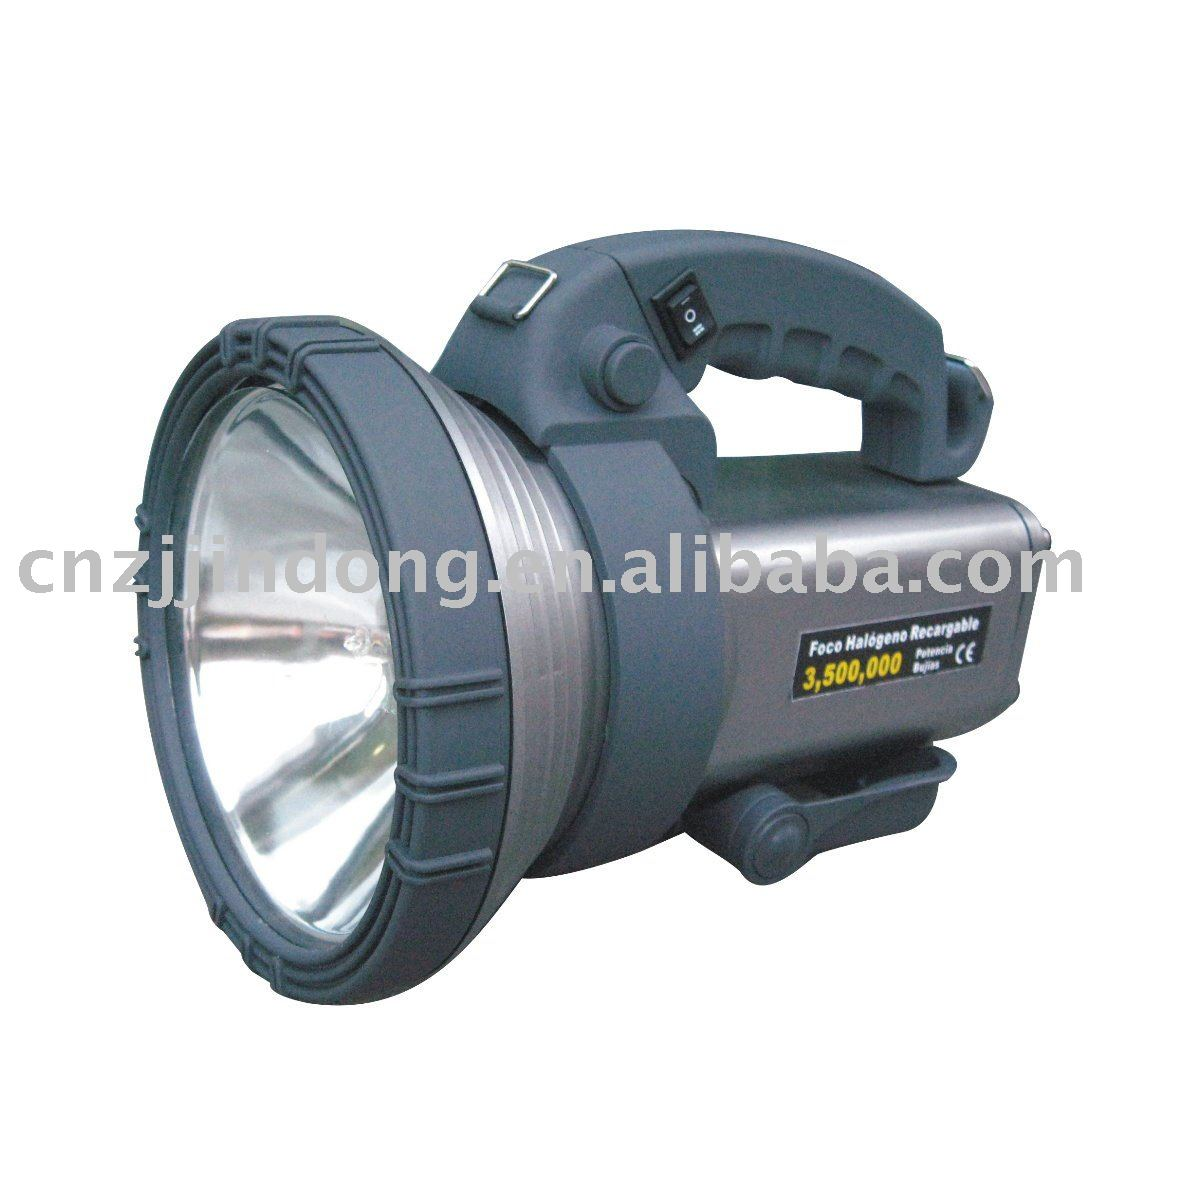 last lighting 12V rechargeable spotlight ce/rohs